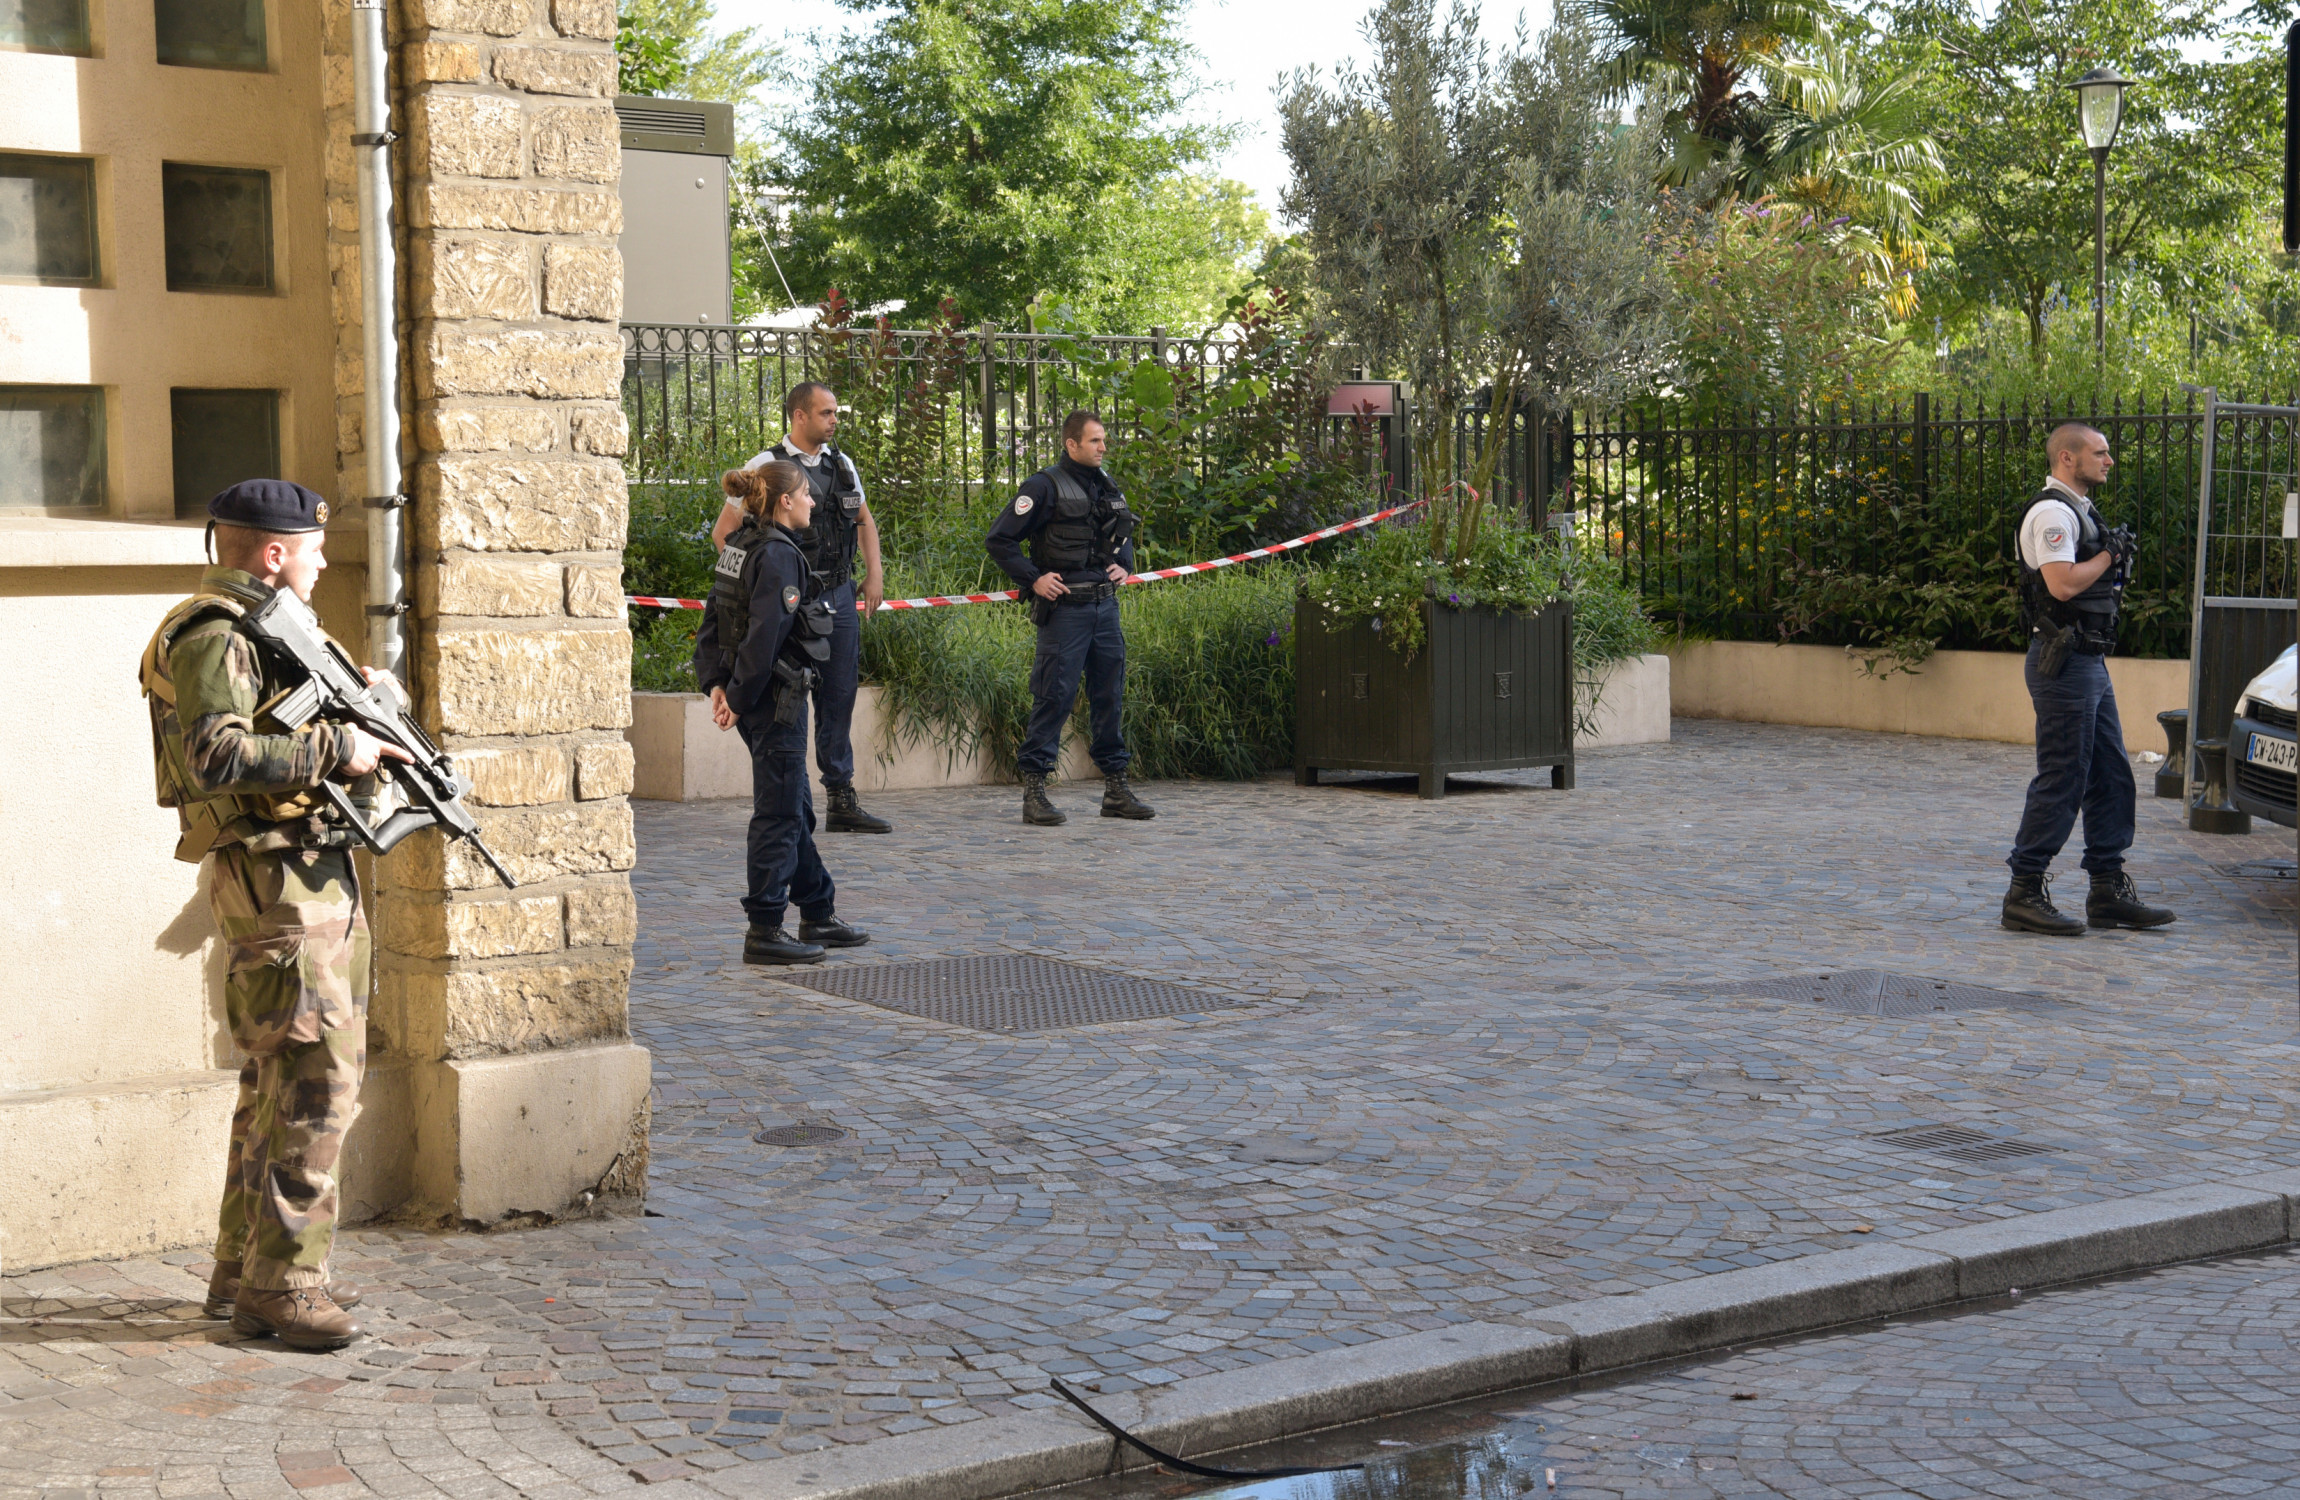 'A deliberate act': Manhunt underway after auto  injures six French soldiers